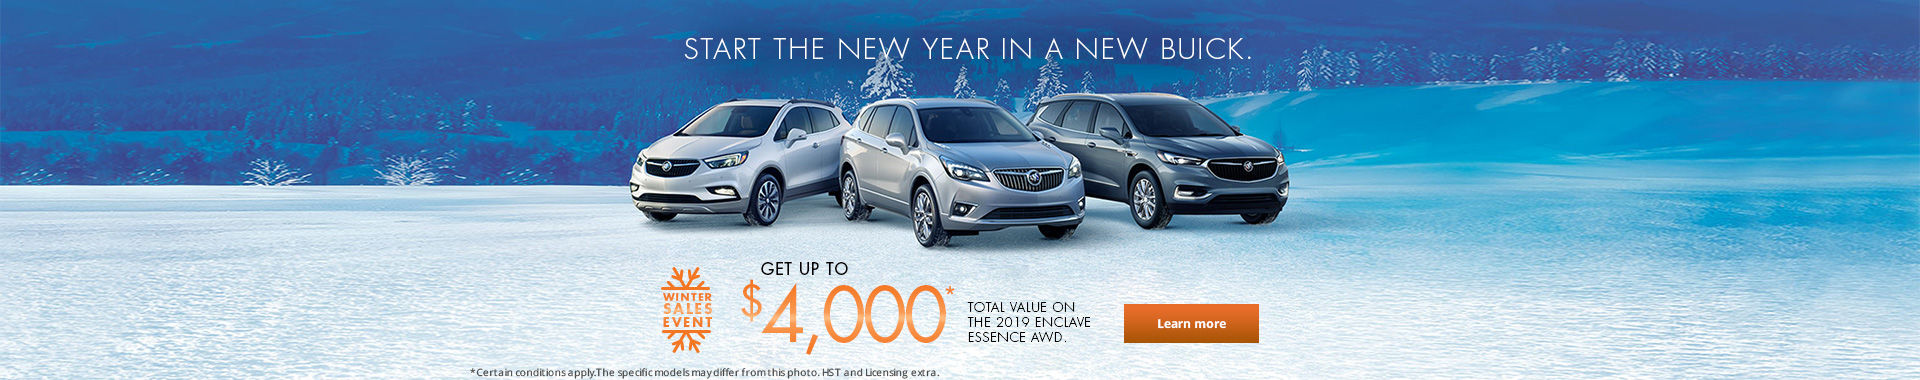 Buick's Winter Sales event